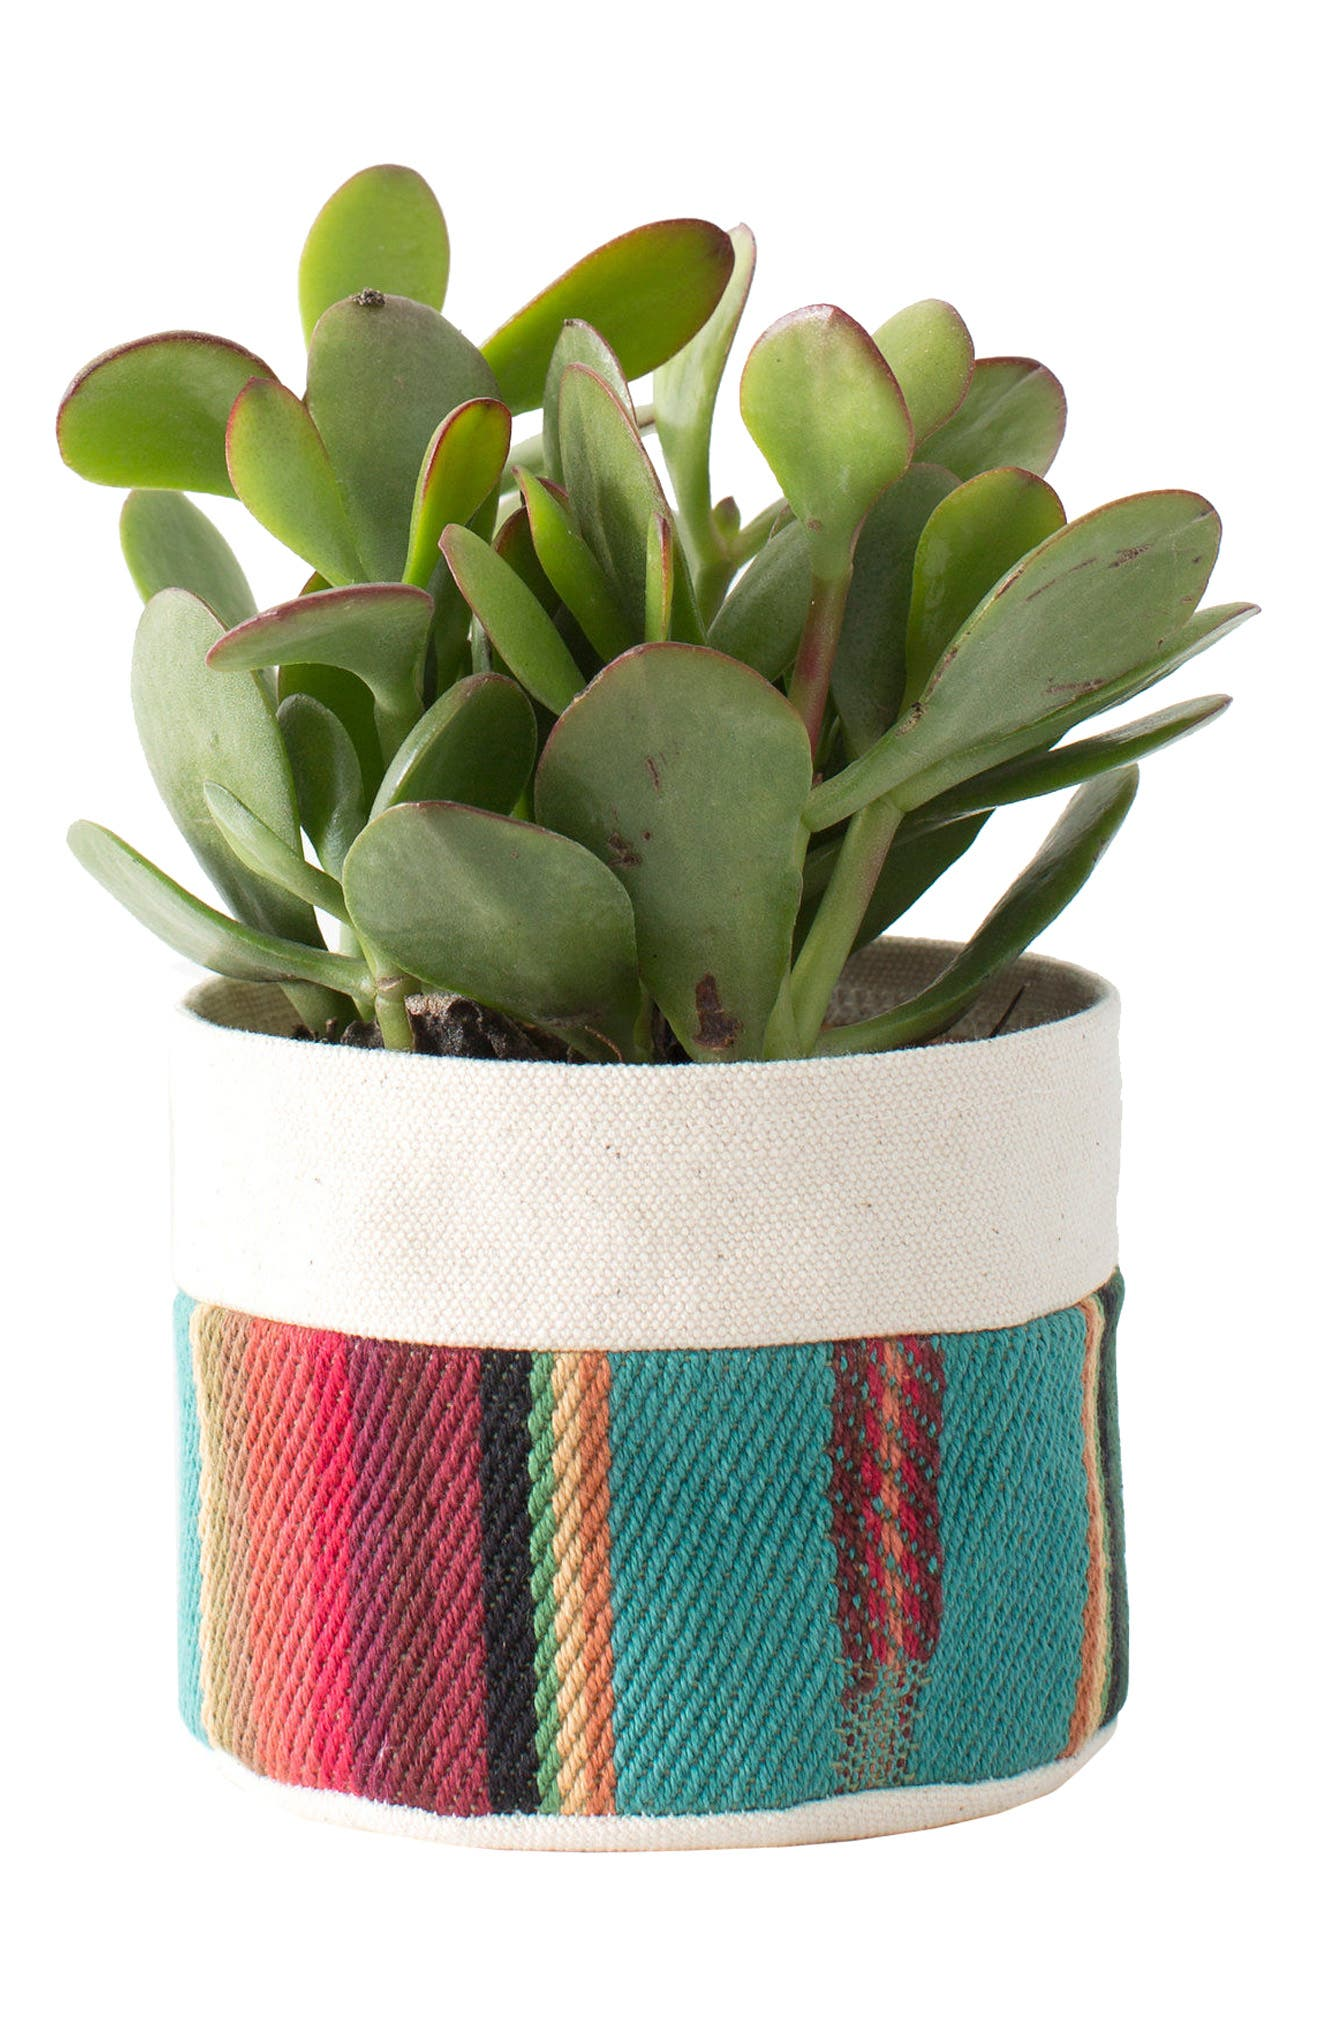 4-Inch Striped Canvas Planter,                             Main thumbnail 1, color,                             Tur/ Red